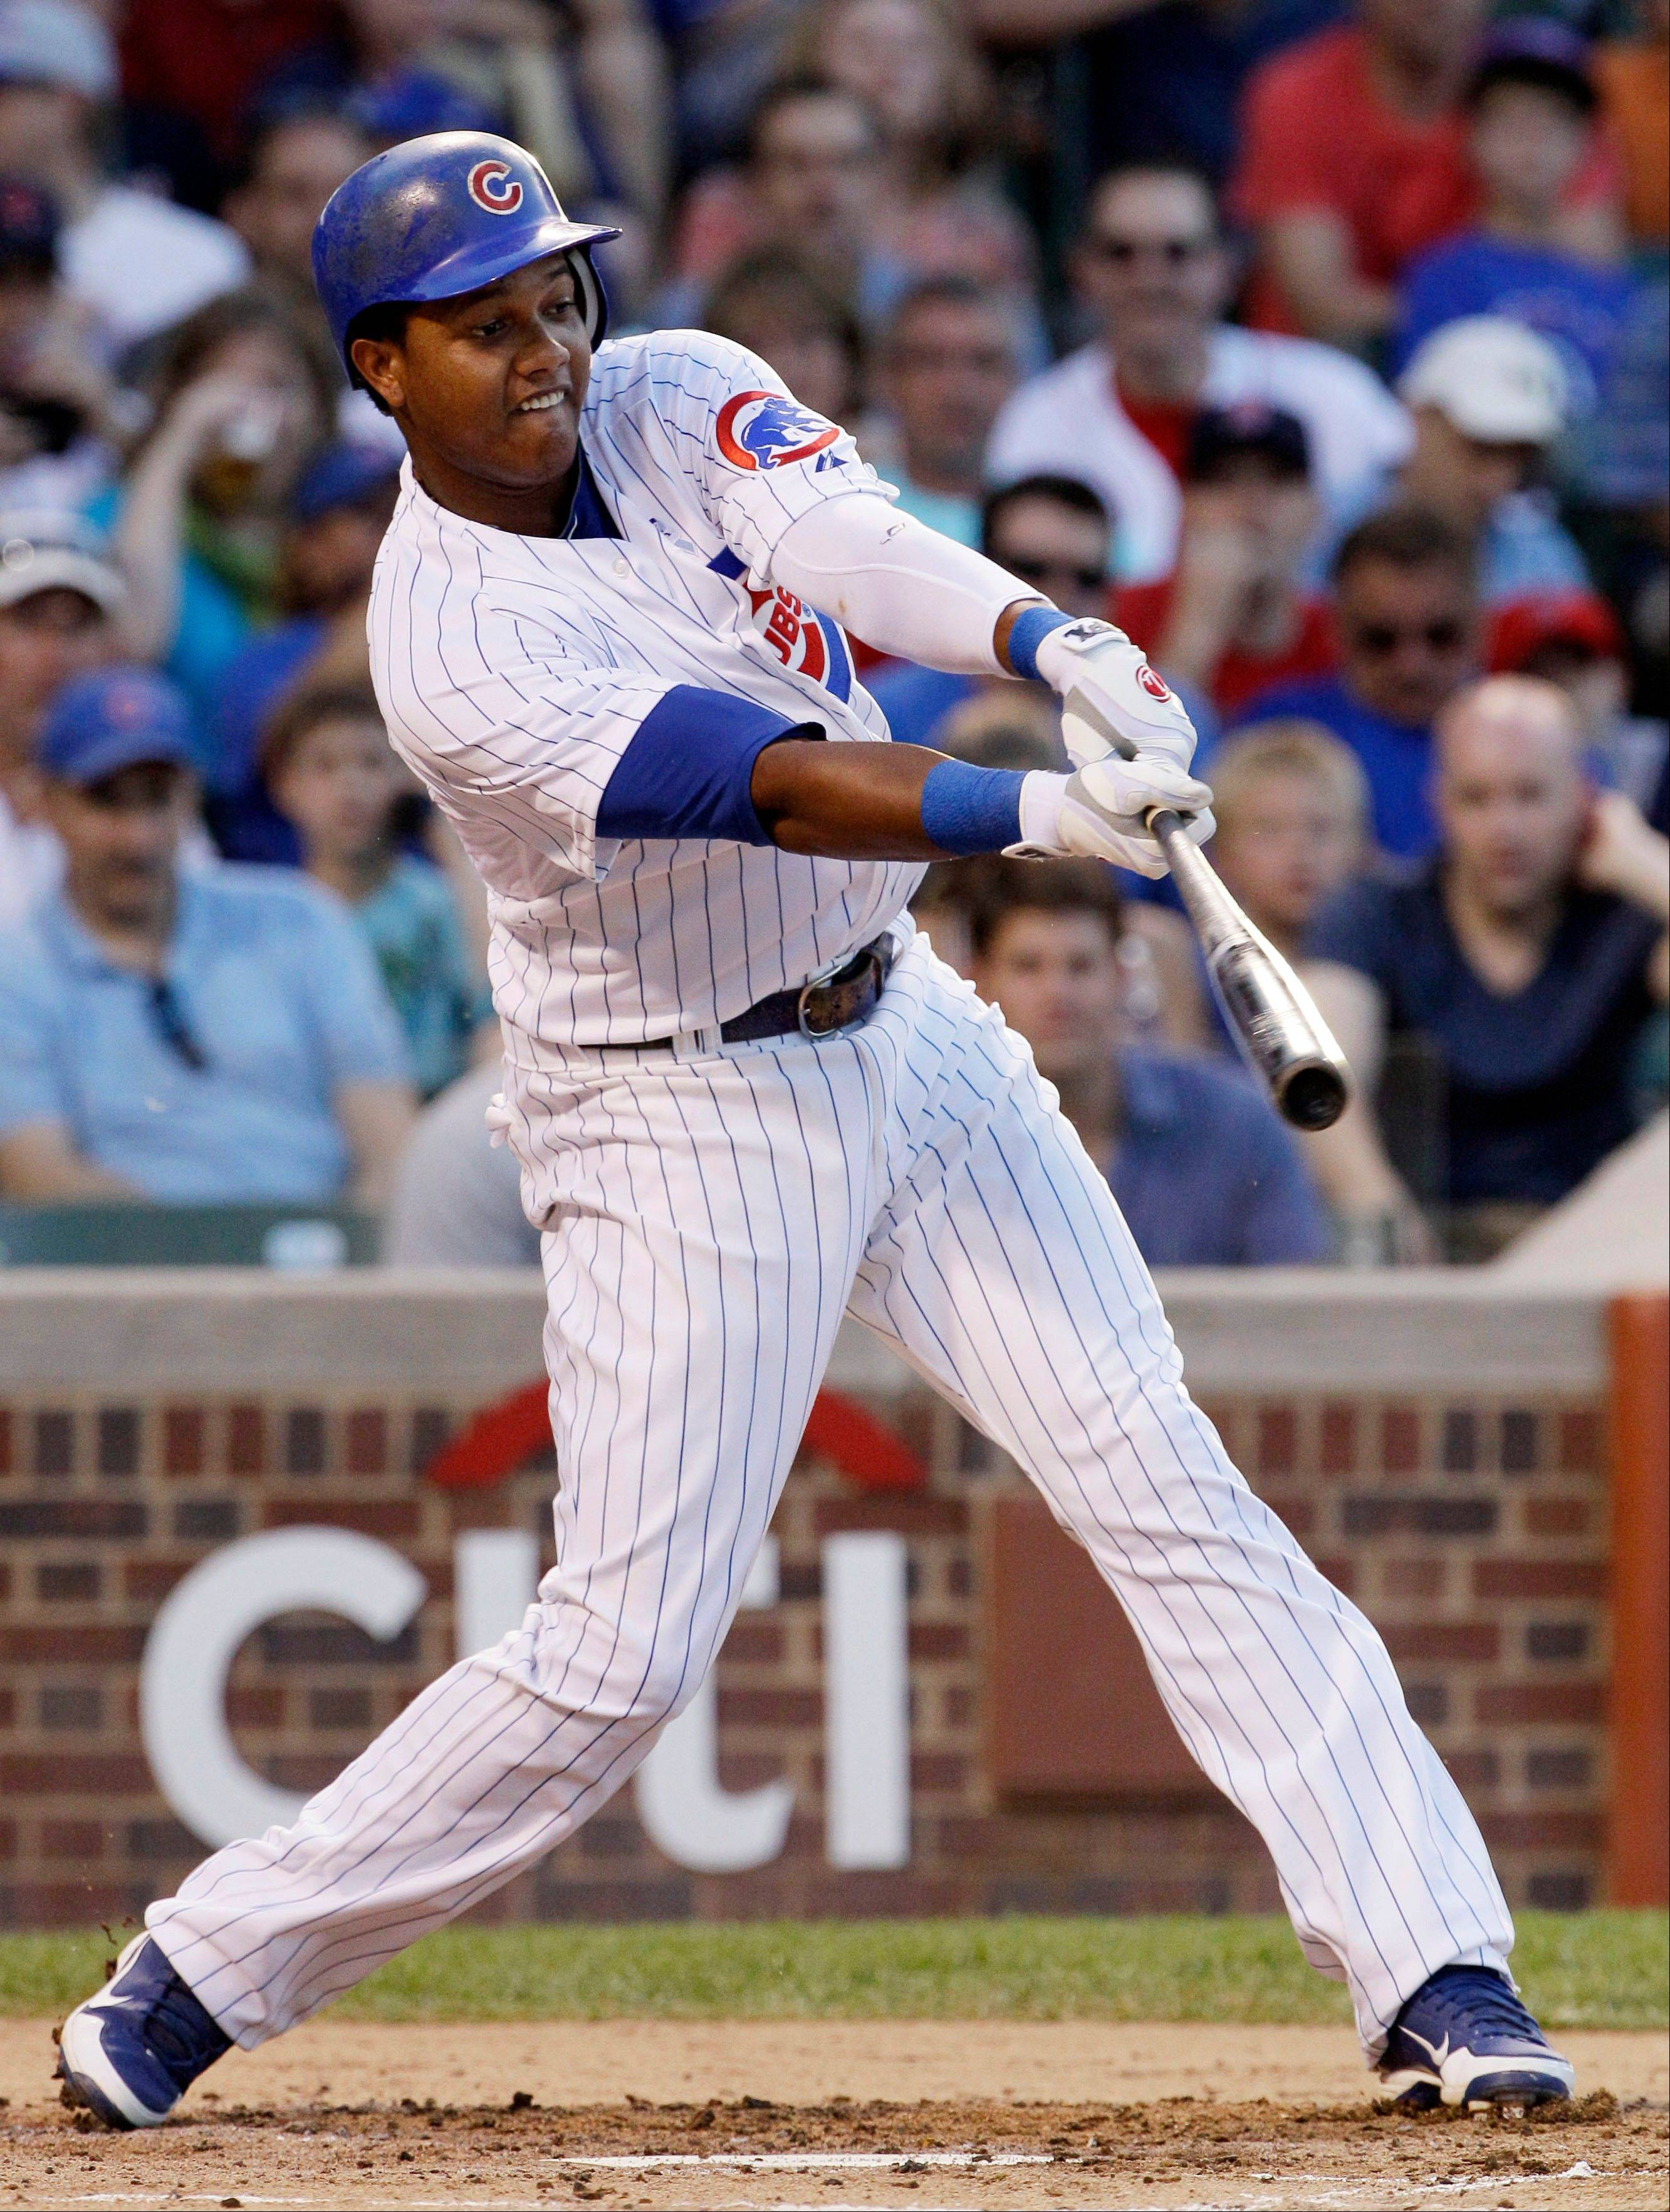 Cubs manager Dale Sveum had this to say about slumping Starlin Castro: �He�s a cut-and-slasher who�s going to swing the bat. I�d like to see him back to where he was in 2010 and 2011 when there was a lot less movement going on. He thinks they�re the same mechanics, but they�re not the same mechanics as what he came up in the big leagues and in 2011.�